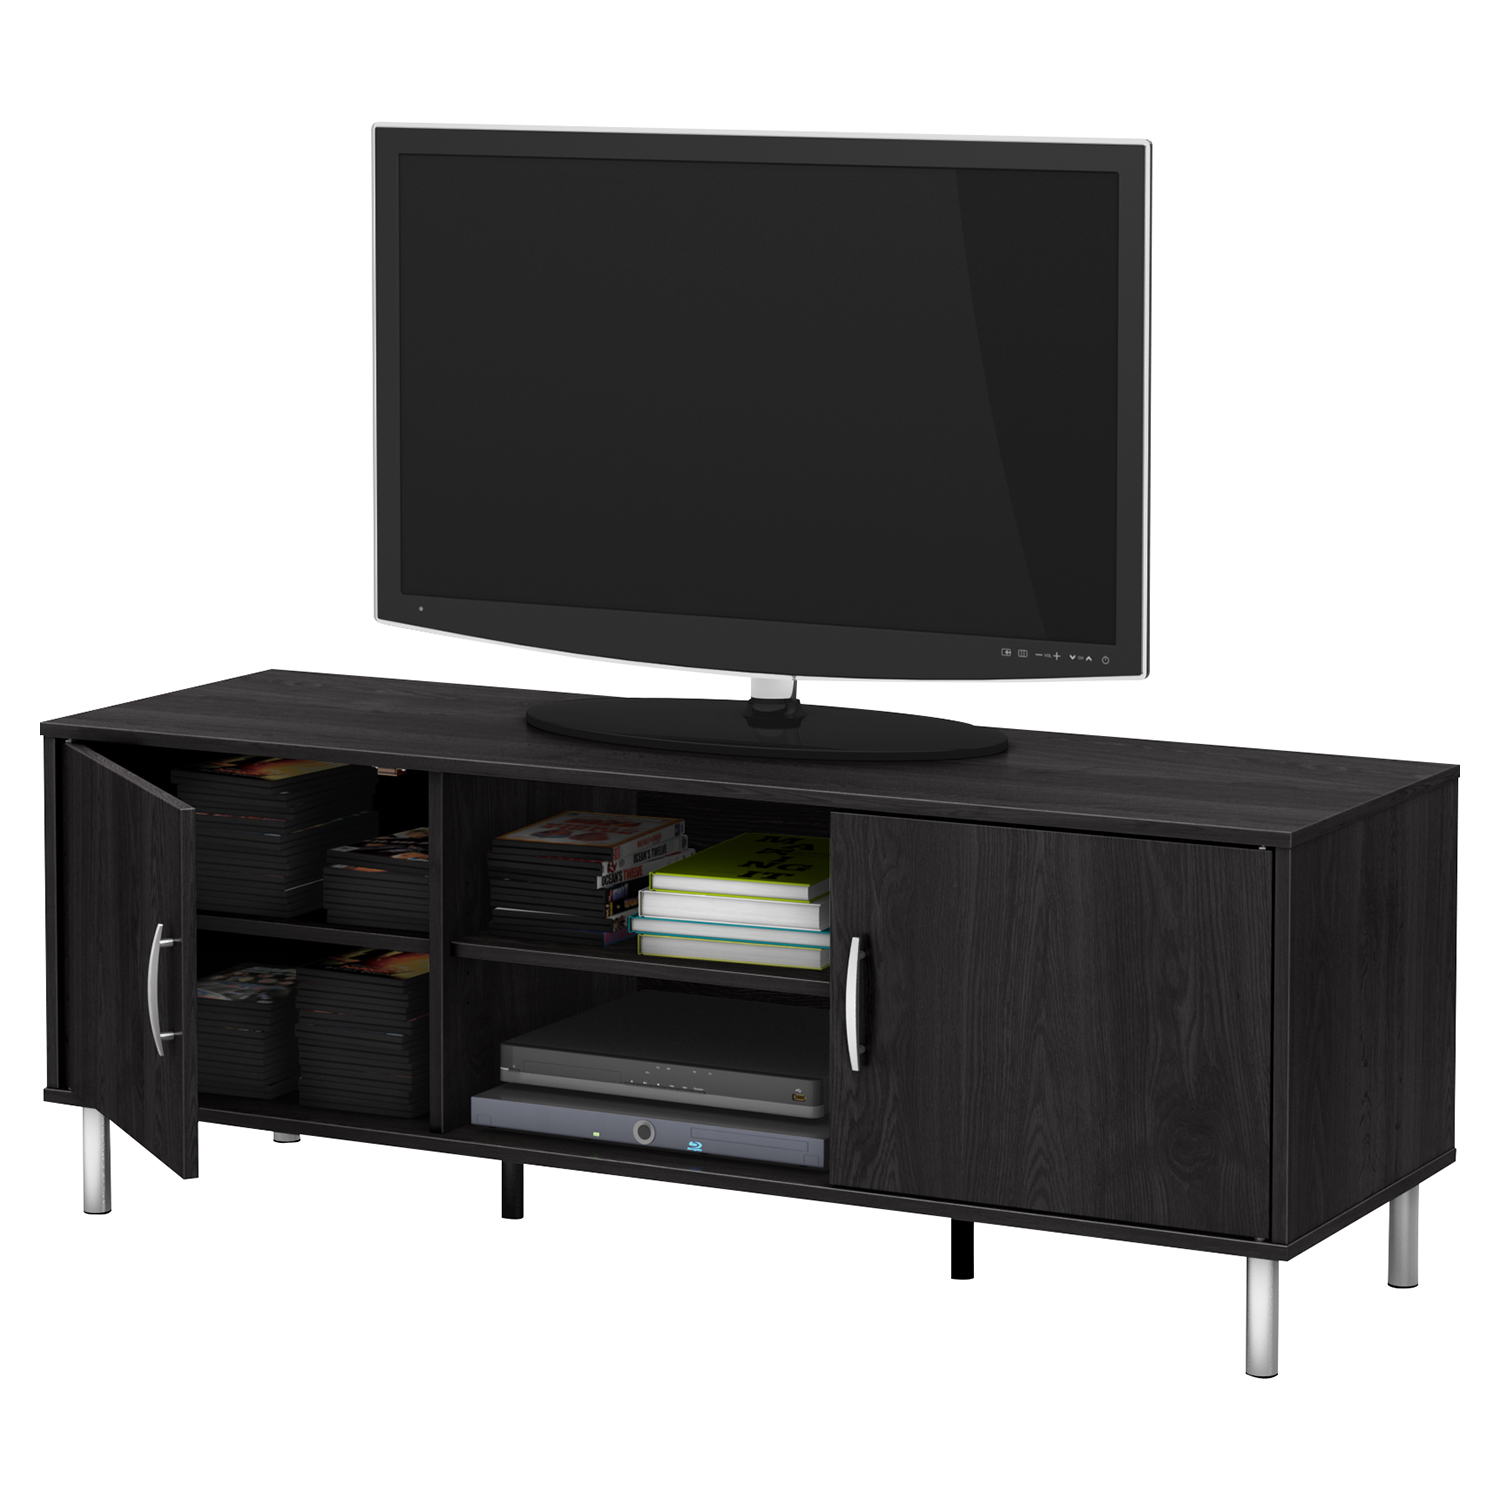 Renta TV Stand - 2 Doors, 2 Shelves, Gray Oak - SS-10001